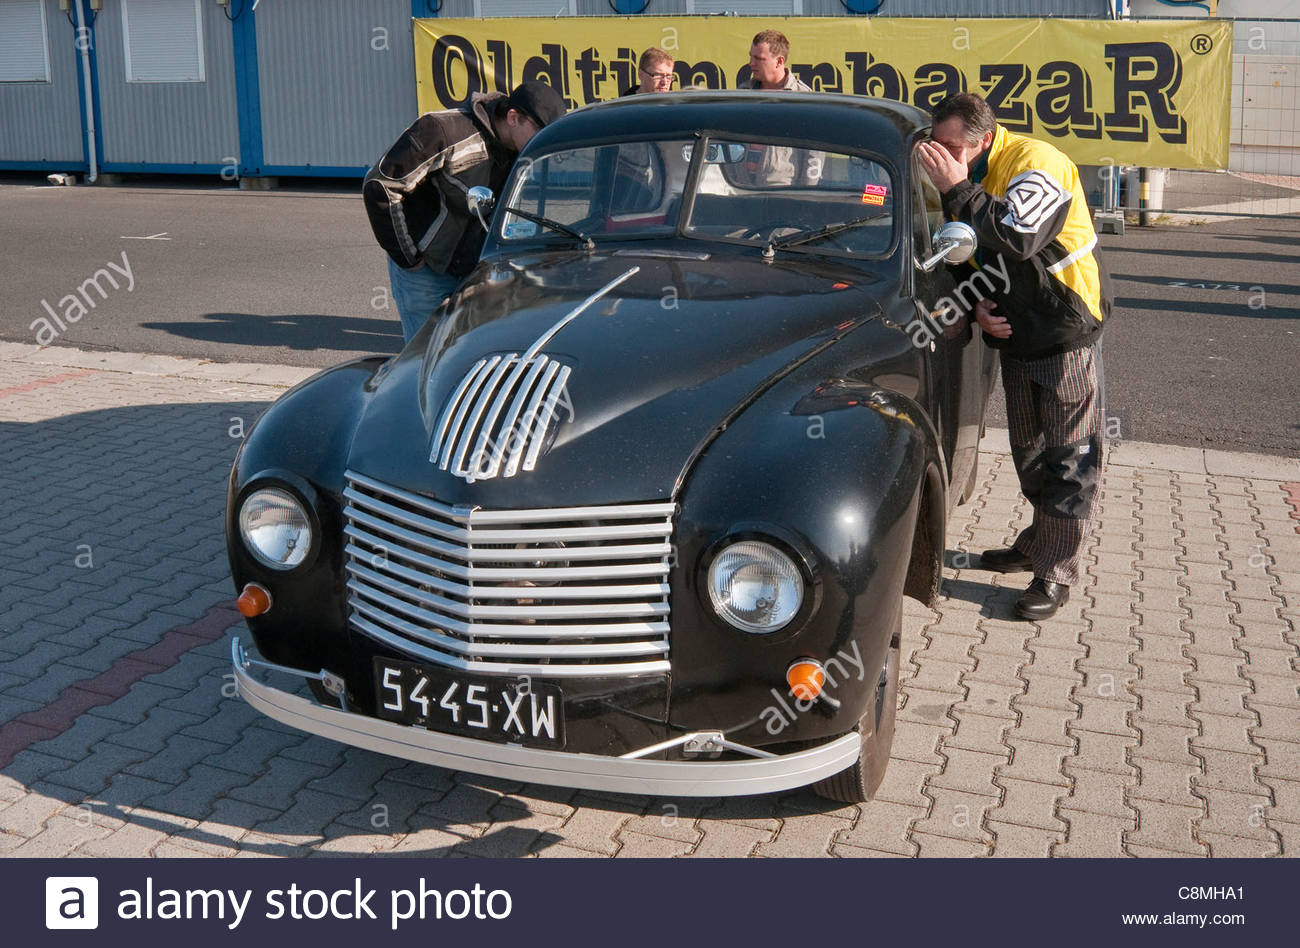 1947 Aero Minor, Czech car designed by Jawa Motors, Oldtimer Bazar fair in Wroclaw, Lower Silesia, Poland Stock Photo